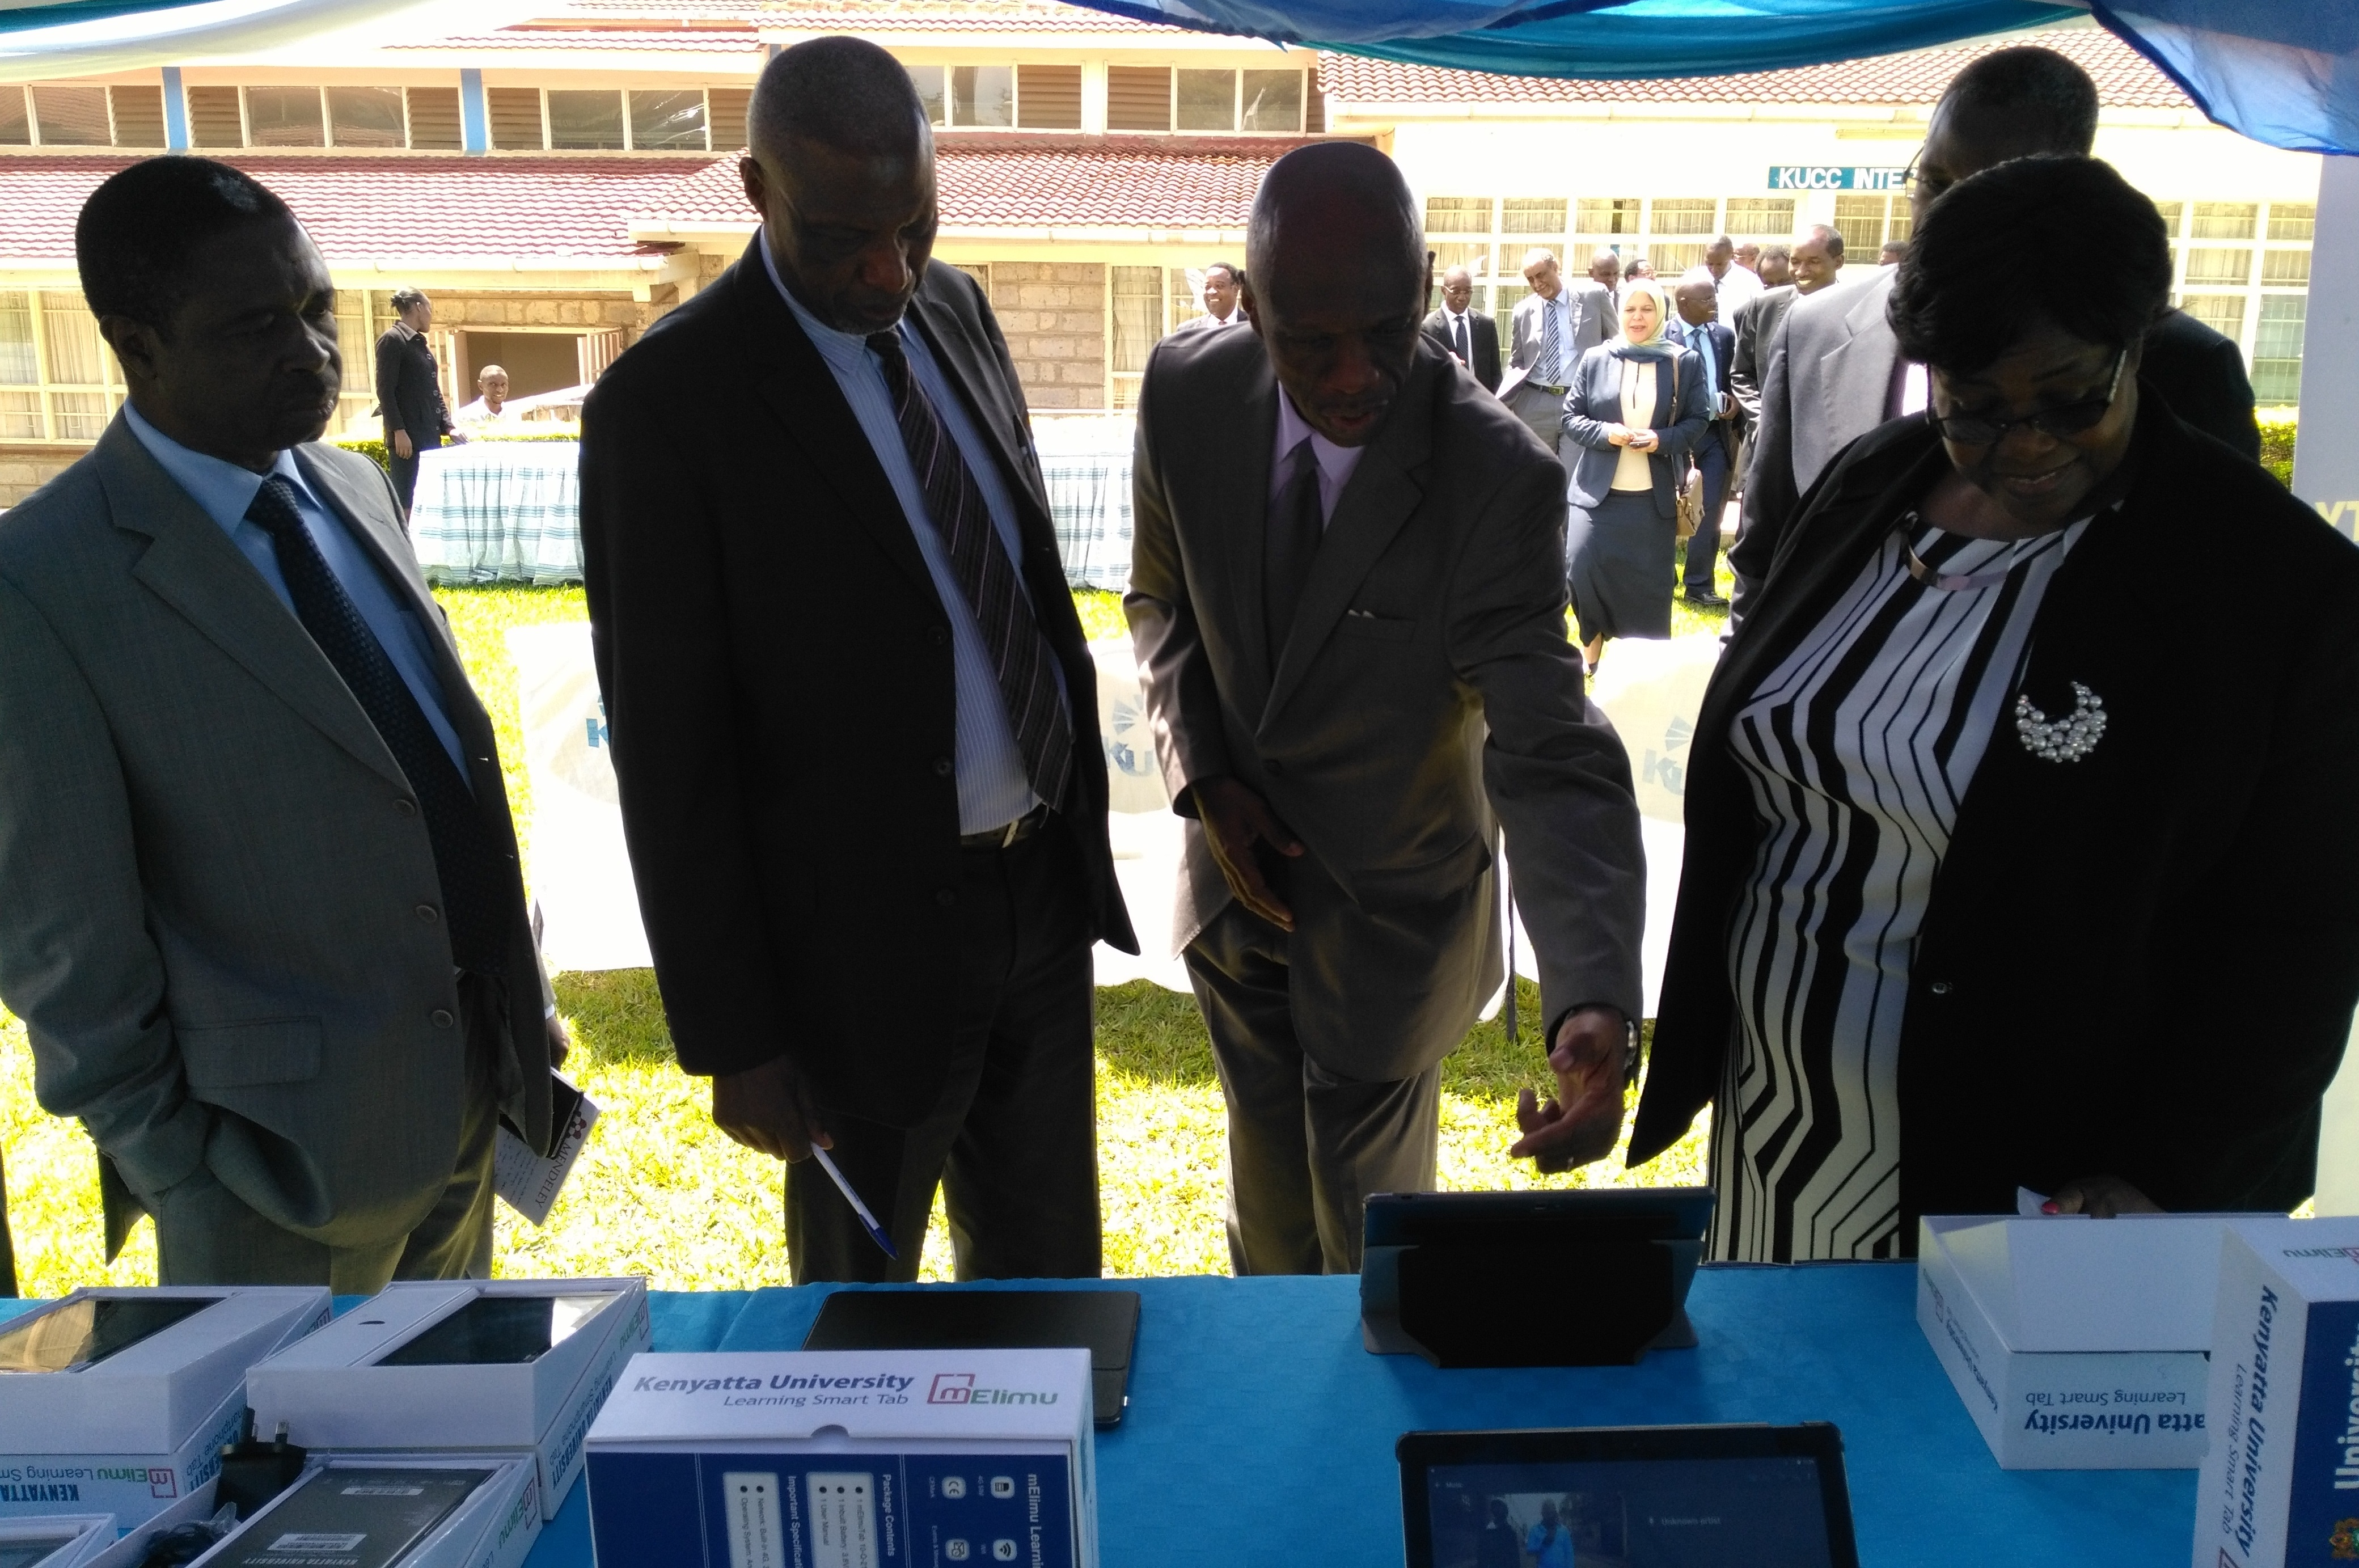 Dean,Digital School- Dr. Onyango, explaining to Kenyatta University V.C Prof. Paul Wainaina and other guests the interactive platform installed on the Digital School 10 inch Tablet